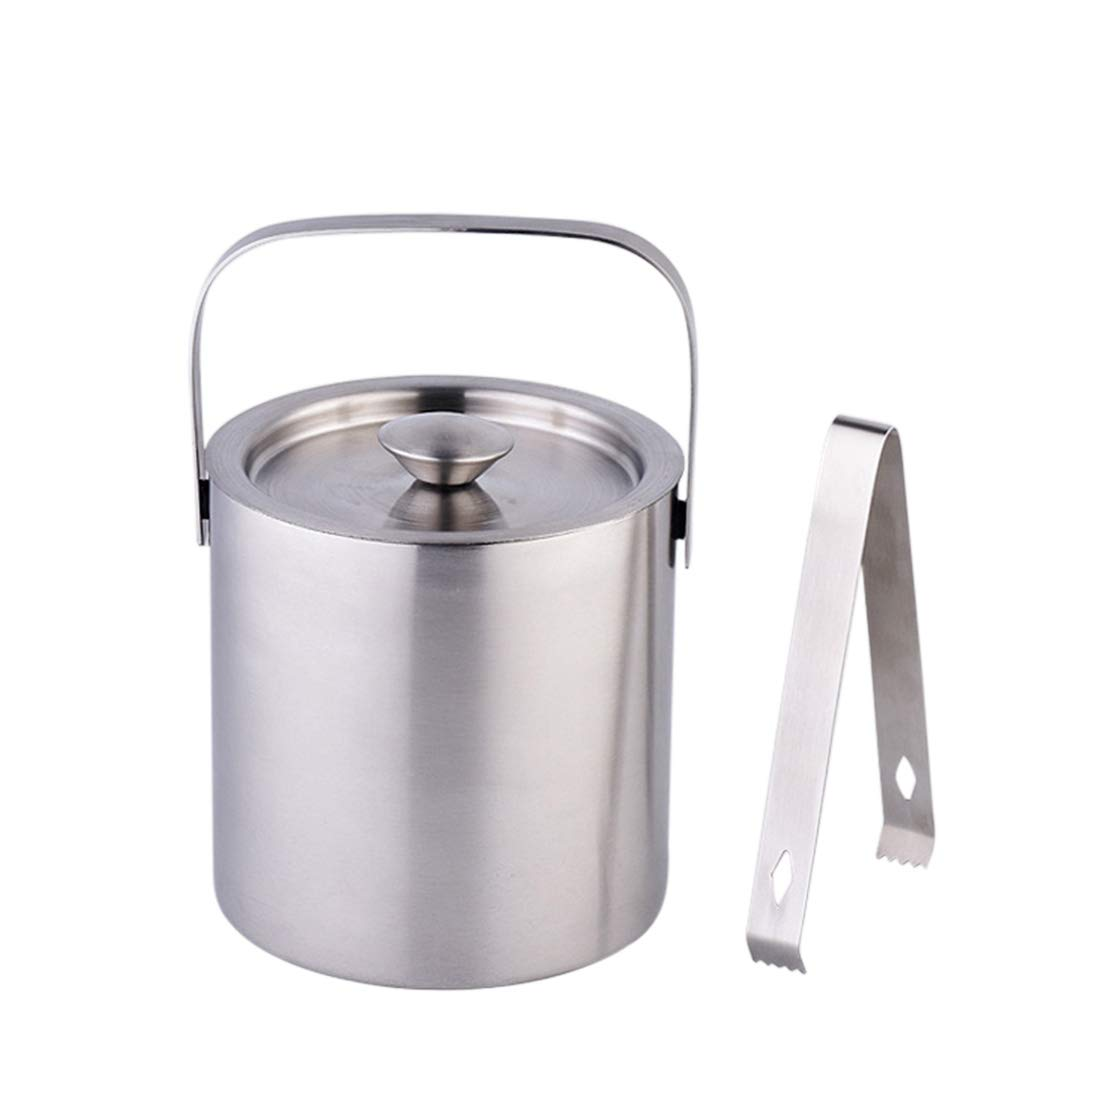 Pinji Insulated Ice Bucket with Lid and Tongs Stainless Steel Kitchen Barware